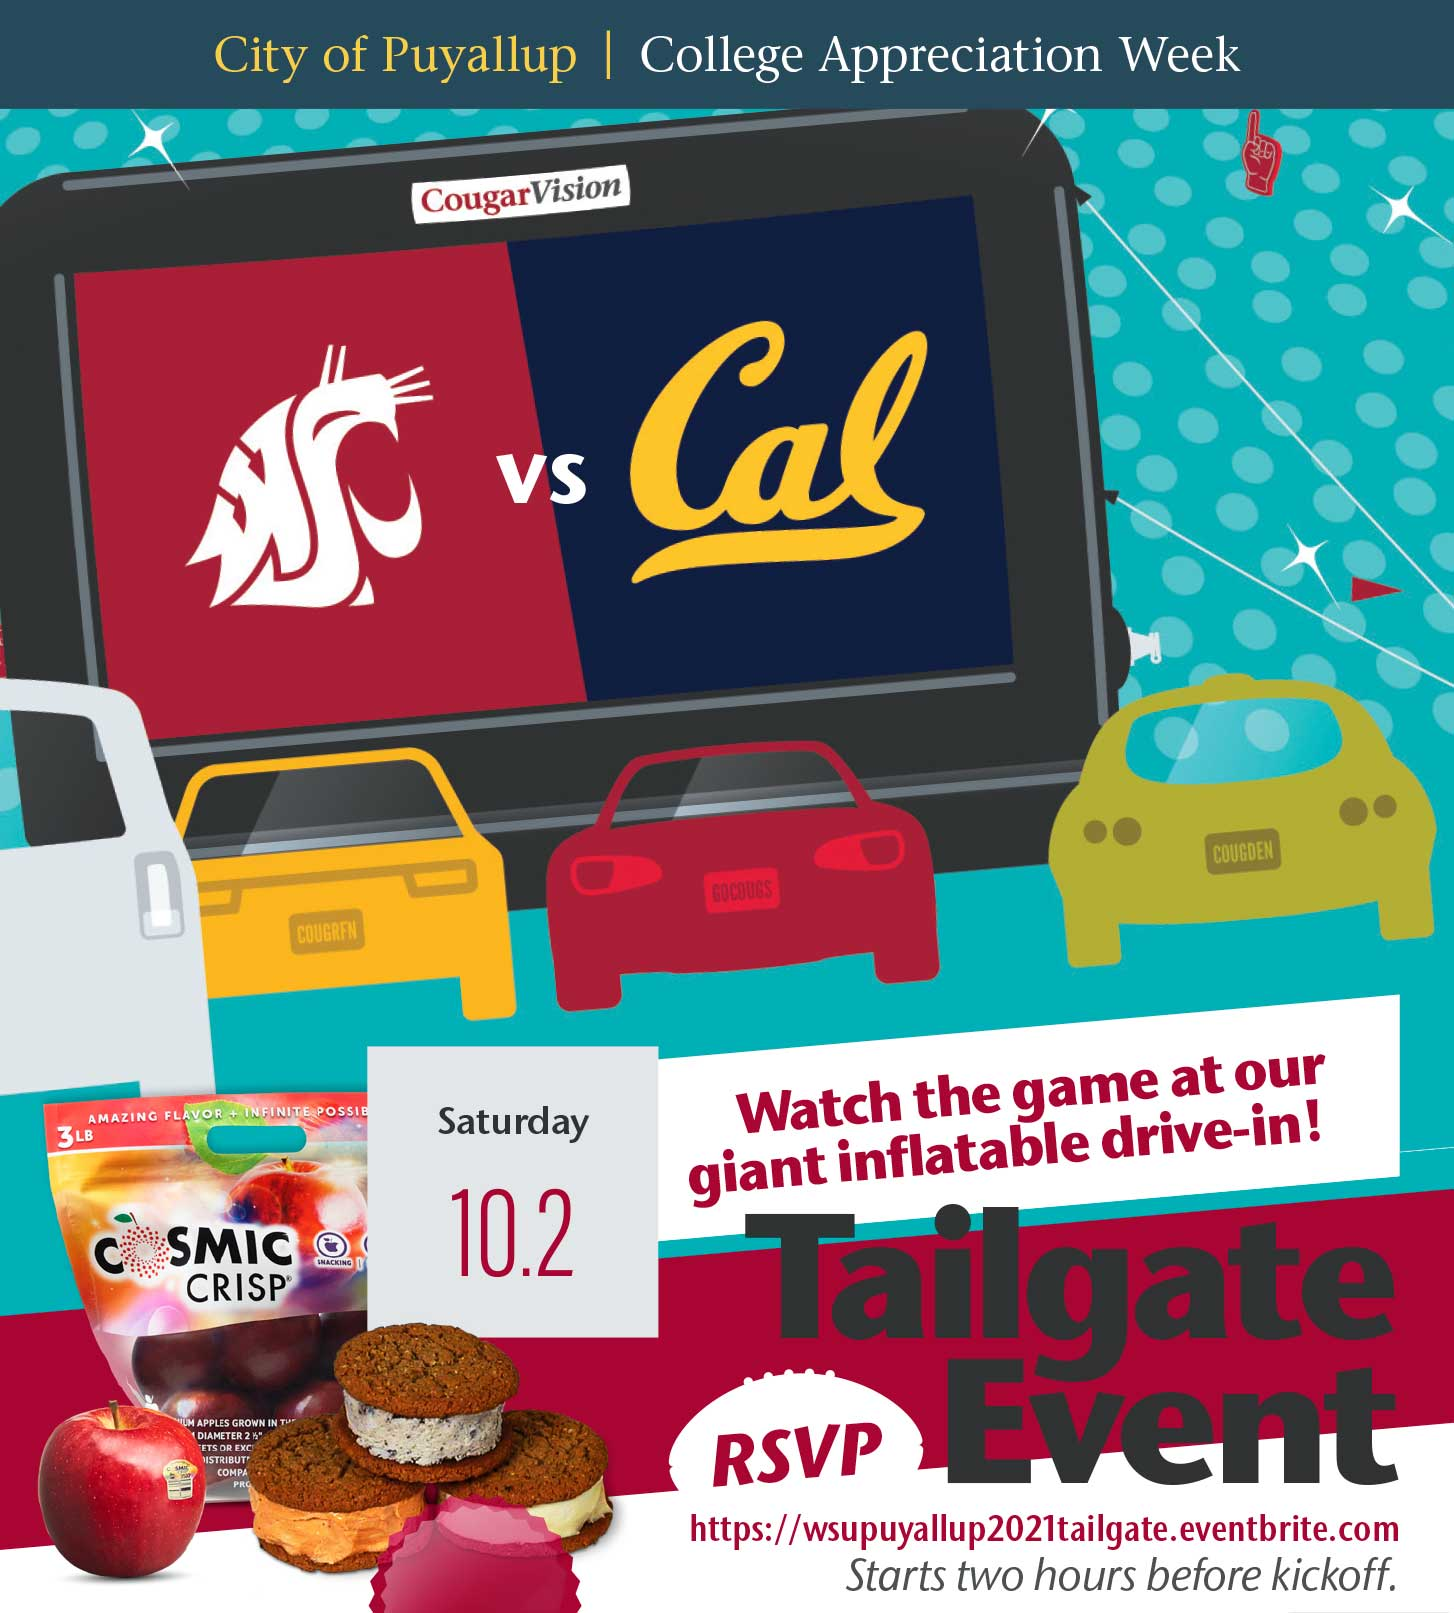 """[Illustration] Inflatable projection screen with WSU & Cal State logos. """"Tailgate Event. Saturday, 10/2. Watch the game at our giant inflatable drive-in! RSVP https://wsupuyallup2021tailgate.eventbrite.com. Starts two hours before kickoff."""""""